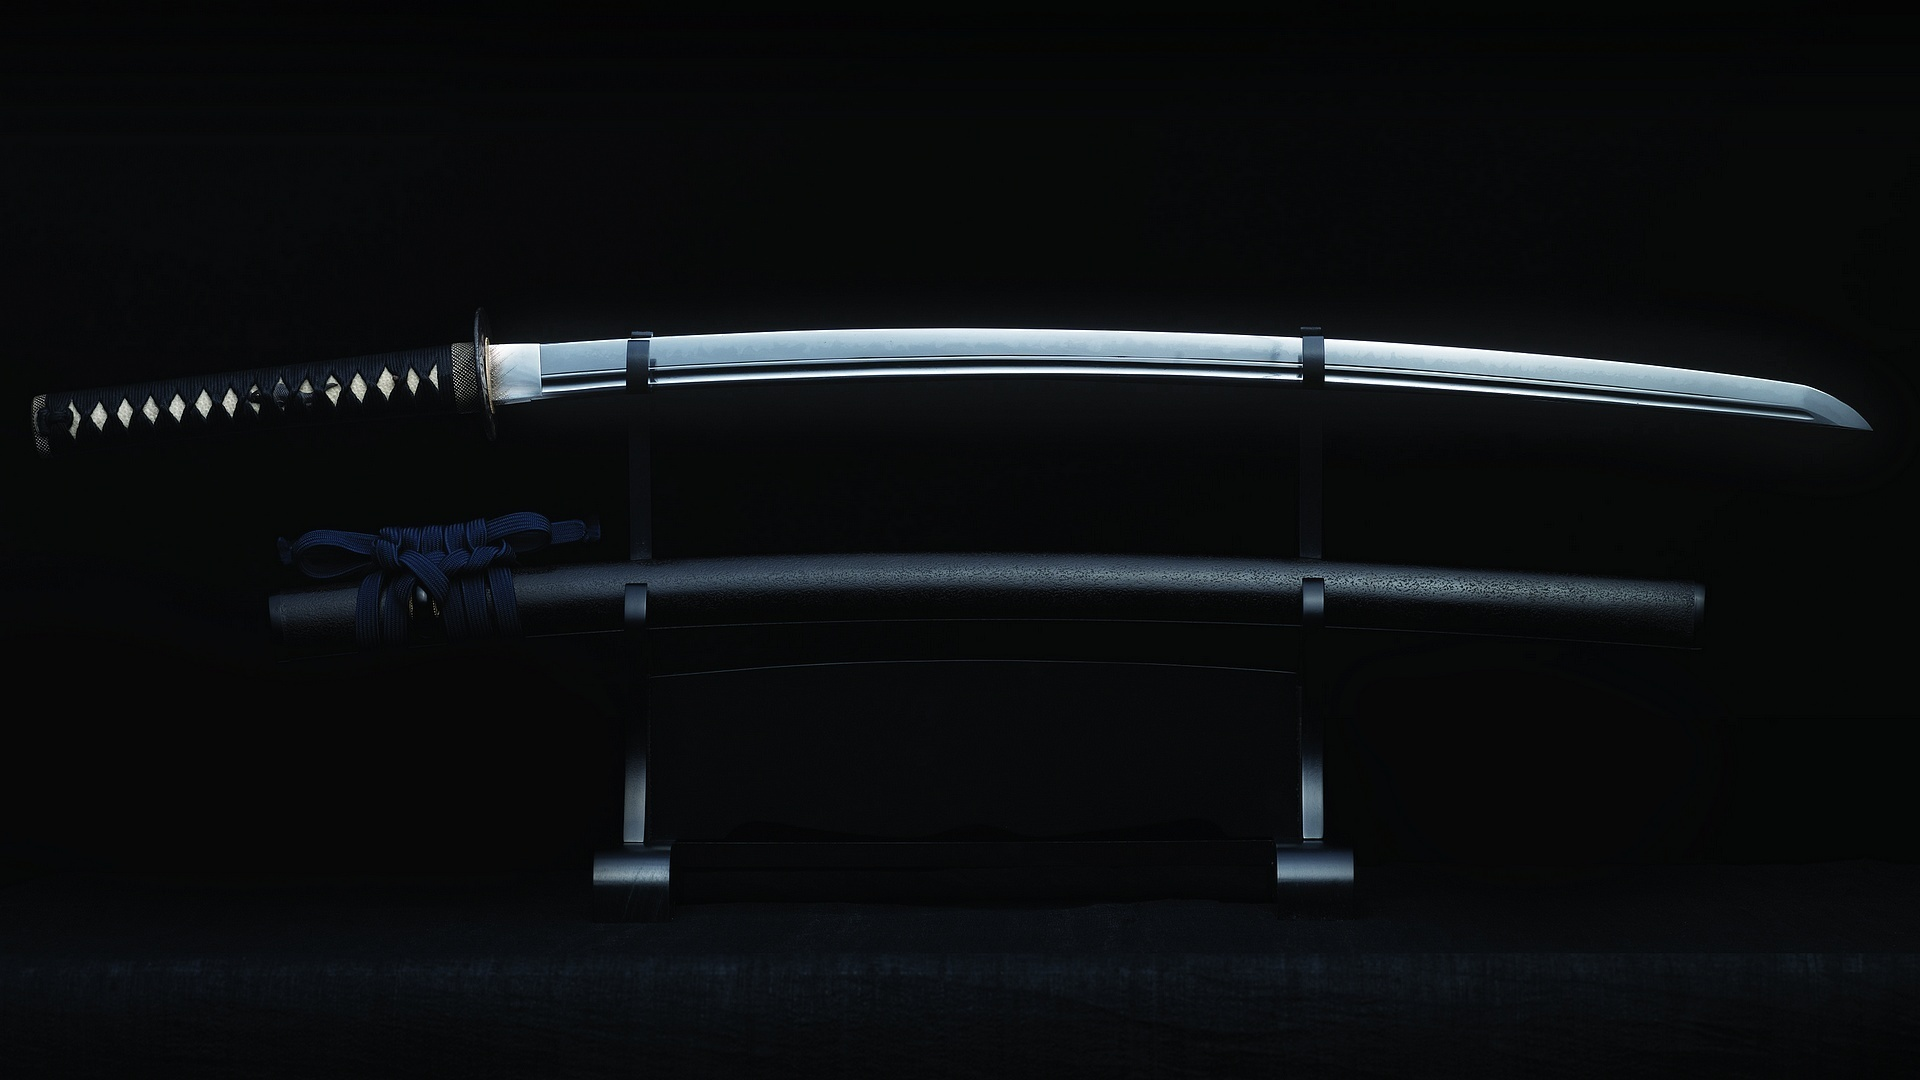 Man Made - Sword Wallpaper